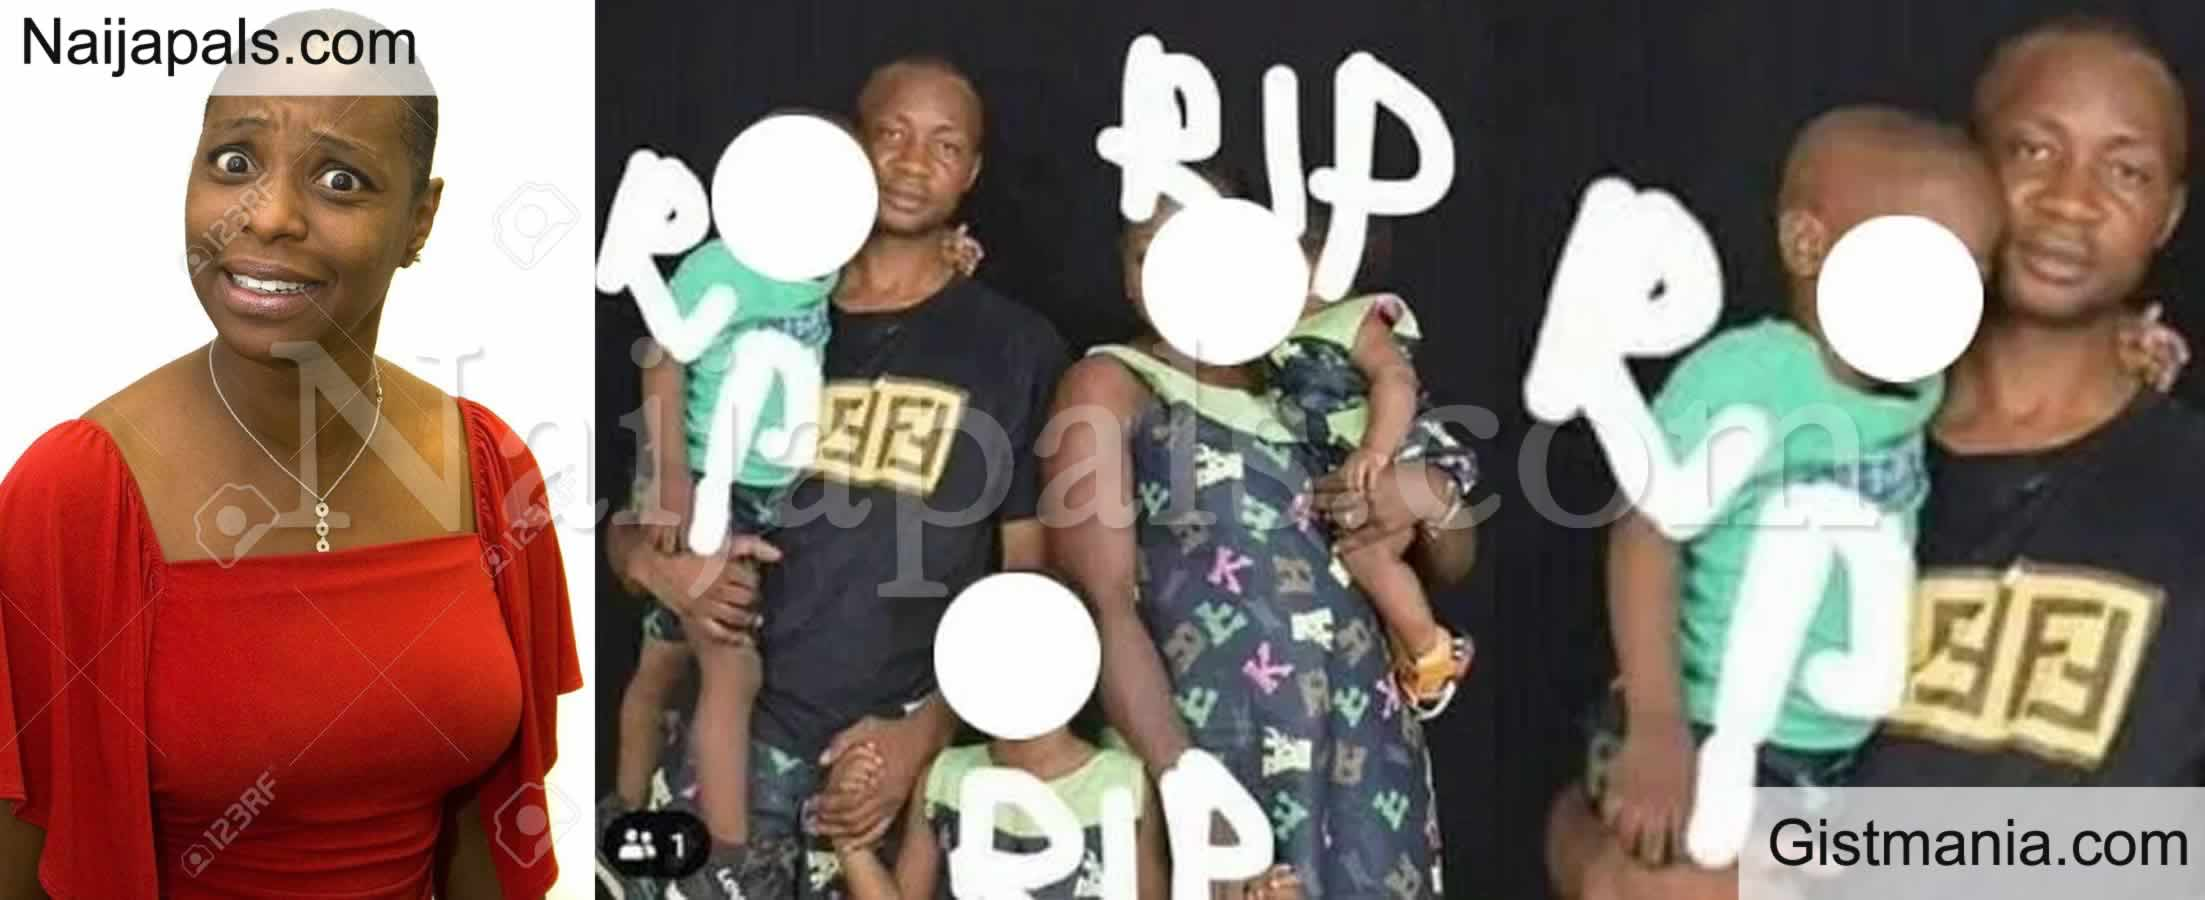 <img alt='.' class='lazyload' data-src='https://img.gistmania.com/emot/shocked.gif' /> R.I.P.: Drama as <b>Angry Side Chic Declares Her Married Lover's Wife & Kids Dead on Facebook</b>